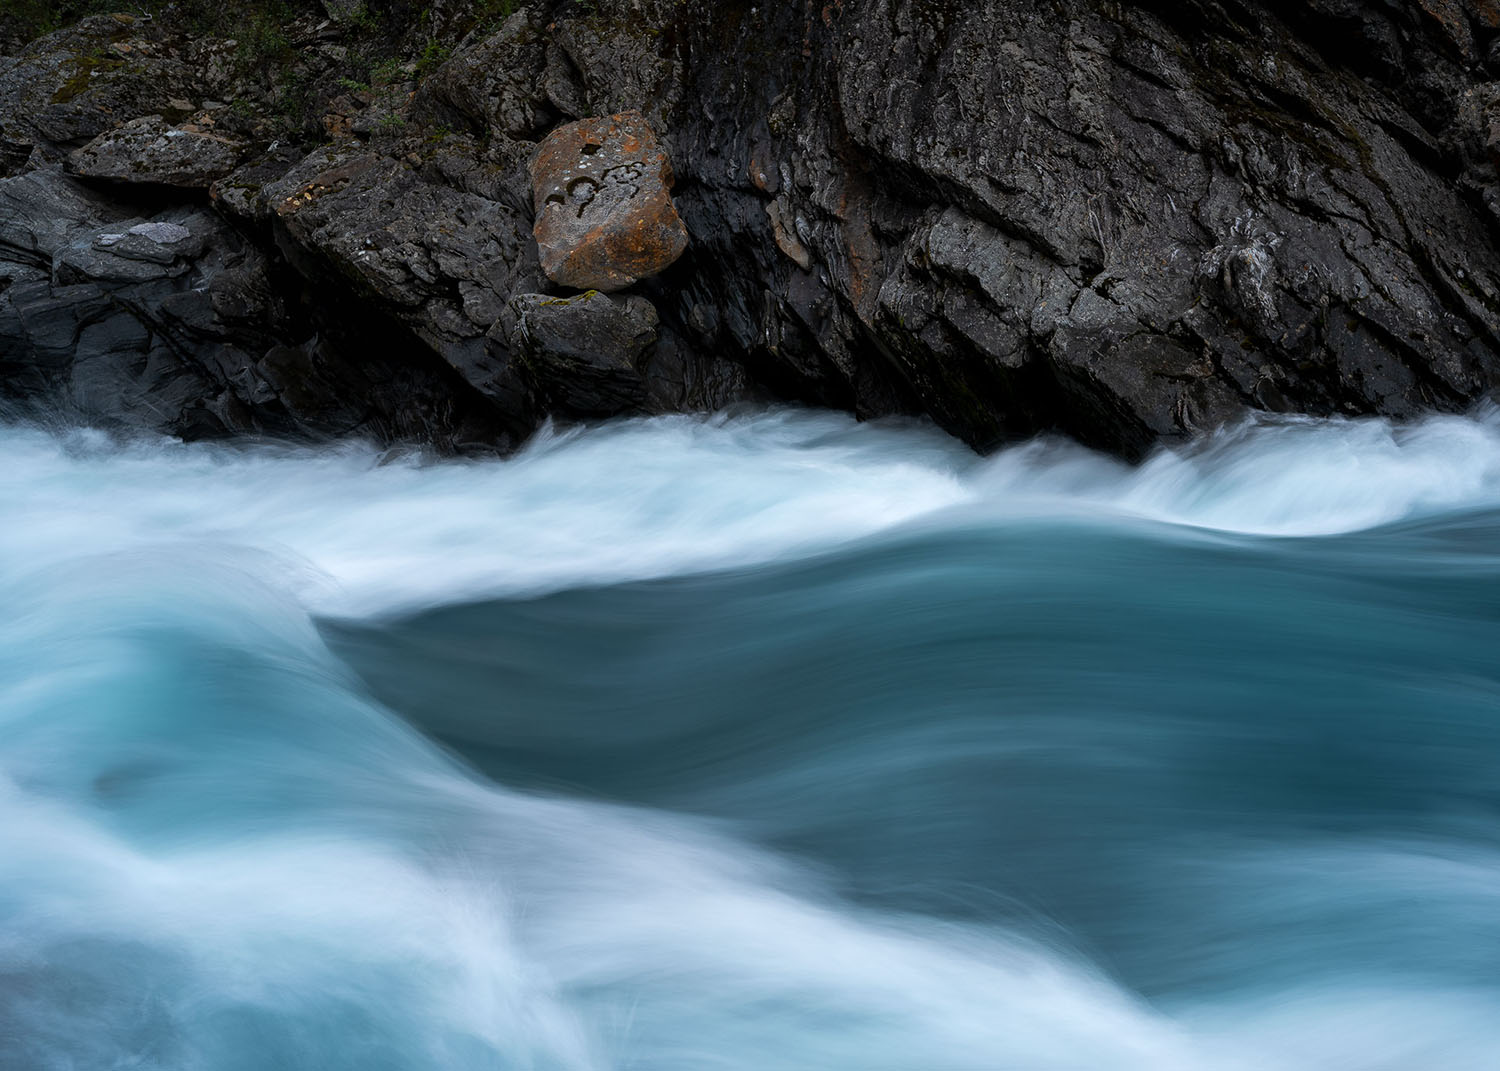 Long exposure photography mistakes